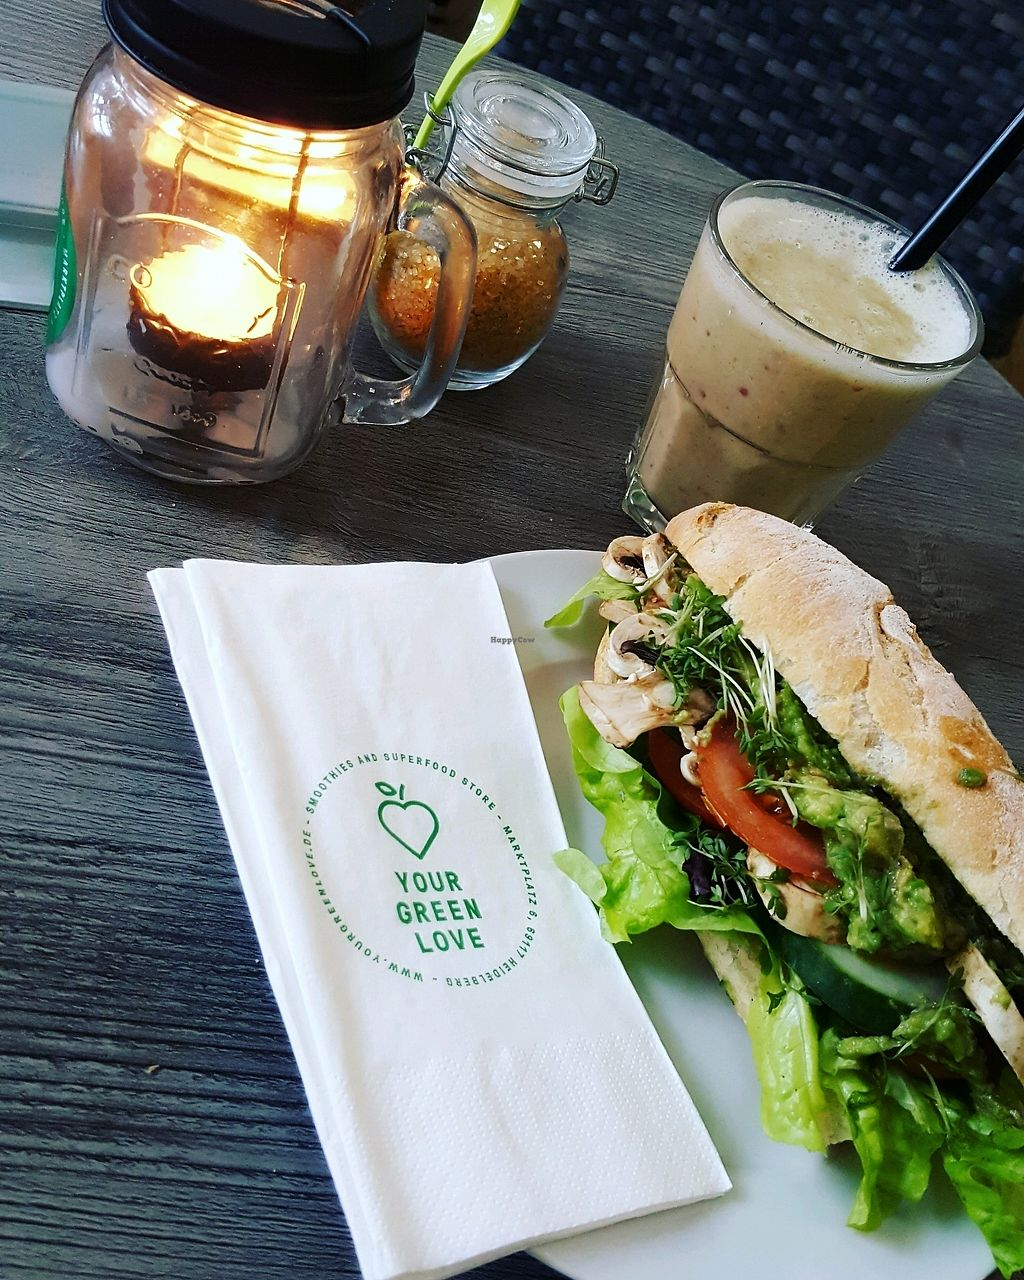 "Photo of Your Green Love  by <a href=""/members/profile/CloudyMelody"">CloudyMelody</a> <br/>vegan Sandwich  <br/> December 24, 2017  - <a href='/contact/abuse/image/89769/338719'>Report</a>"